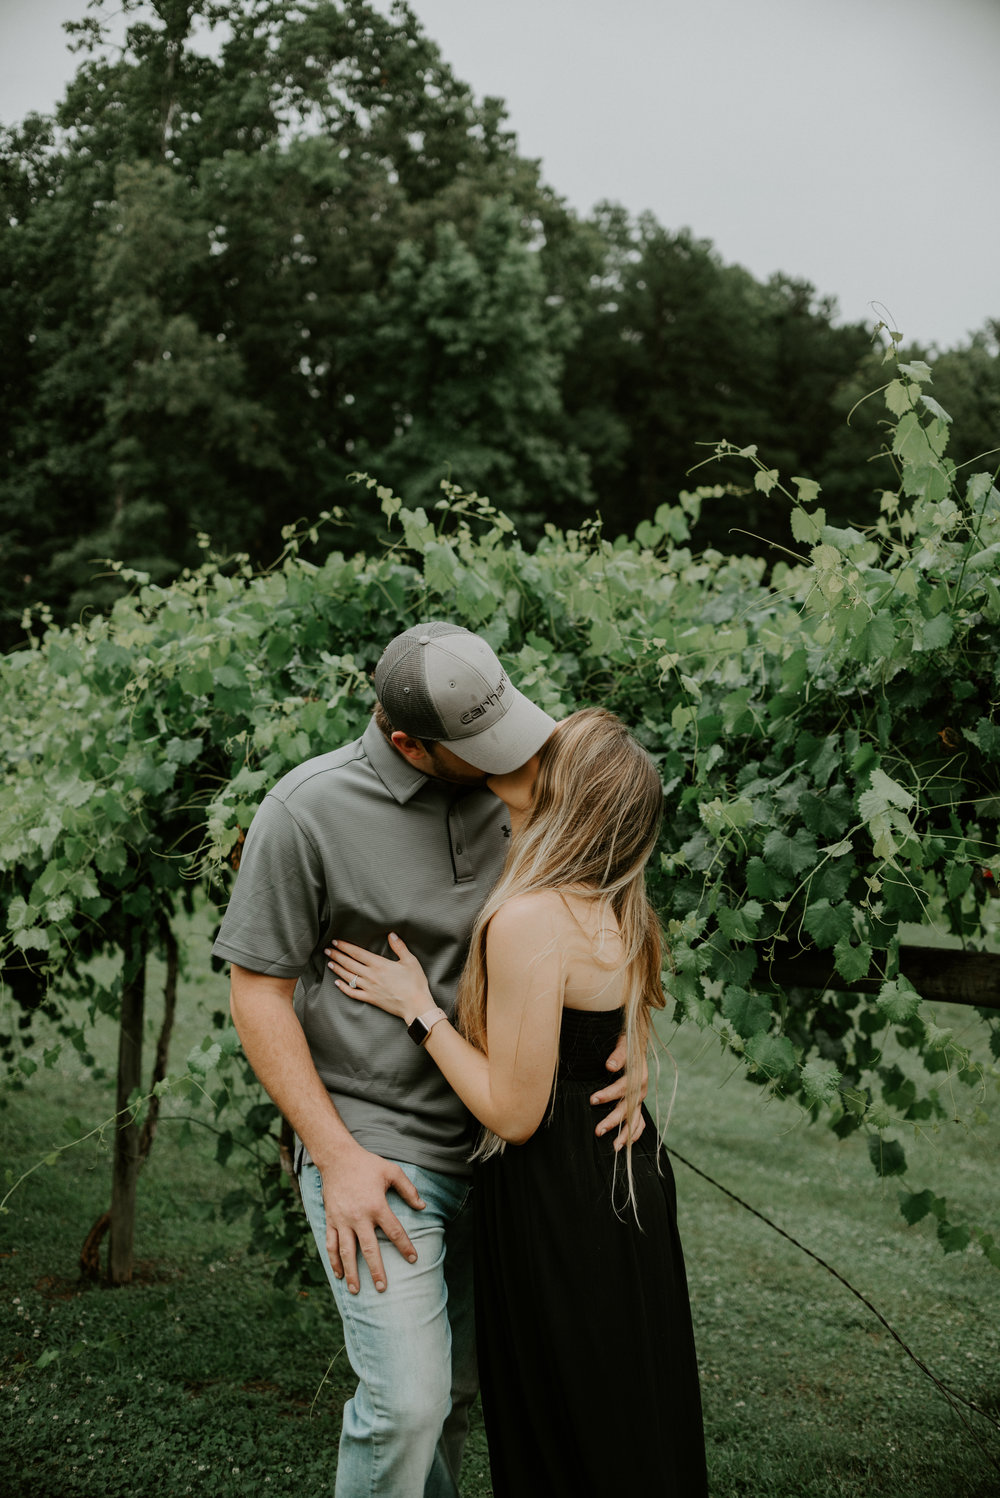 WonderlyCreative_Proposal_6.23.18_Makenzie&Carson_-78.jpg